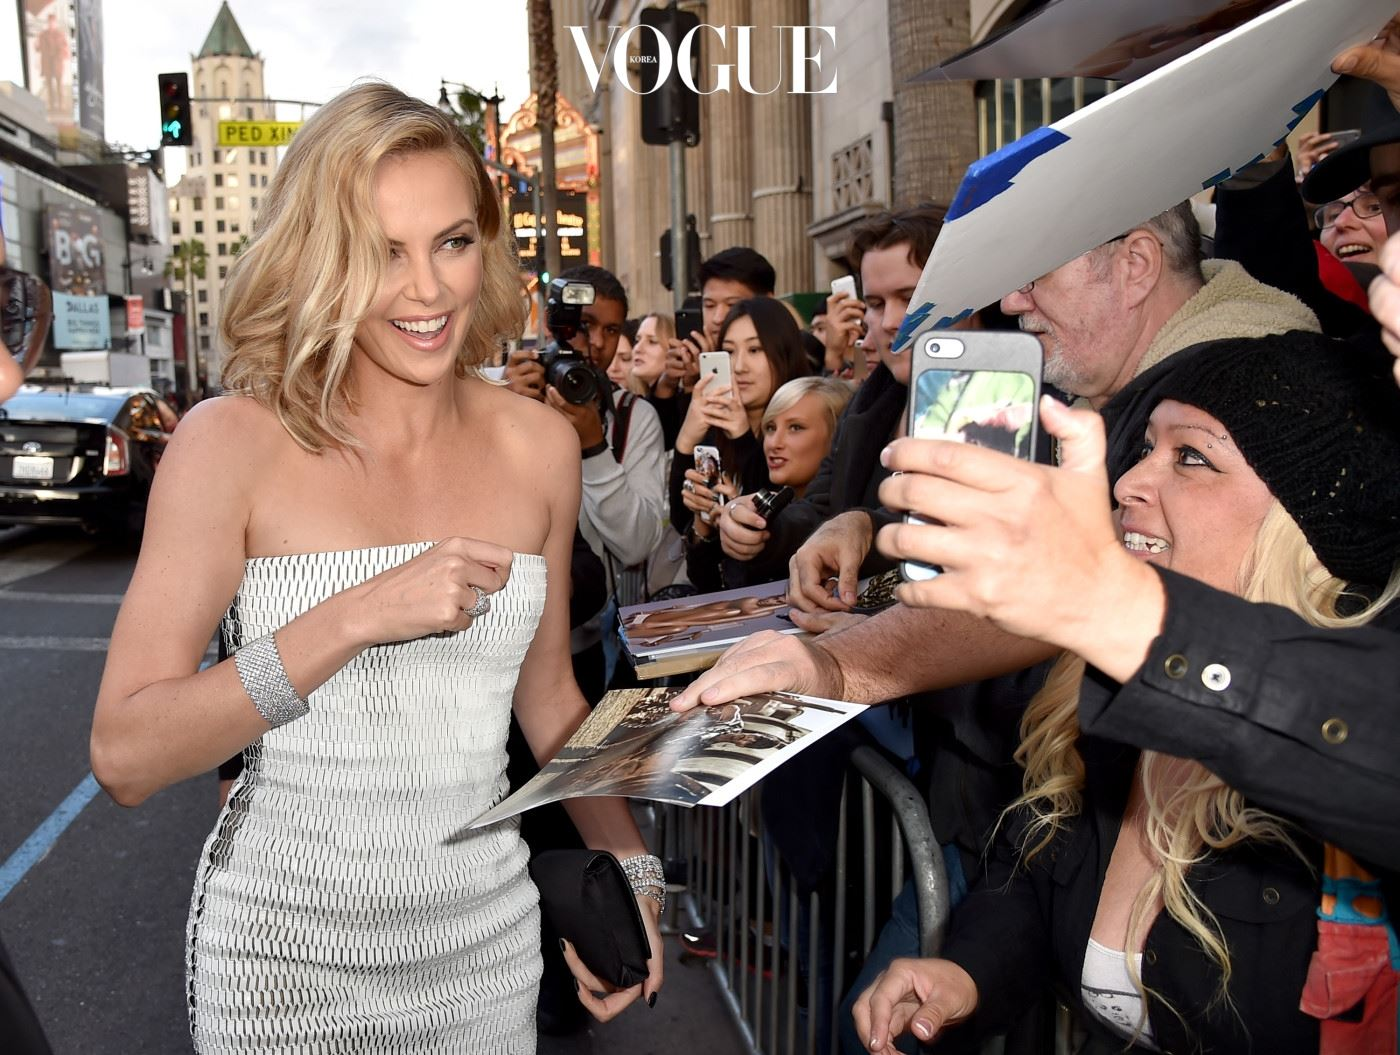 """HOLLYWOOD, CA - MAY 07:  Actress Charlize Theron signs autographs as she attends the premiere of Warner Bros. Pictures' """"Mad Max: Fury Road"""" at TCL Chinese Theatre on May 7, 2015 in Hollywood, California.  (Photo by Kevin Winter/Getty Images)"""